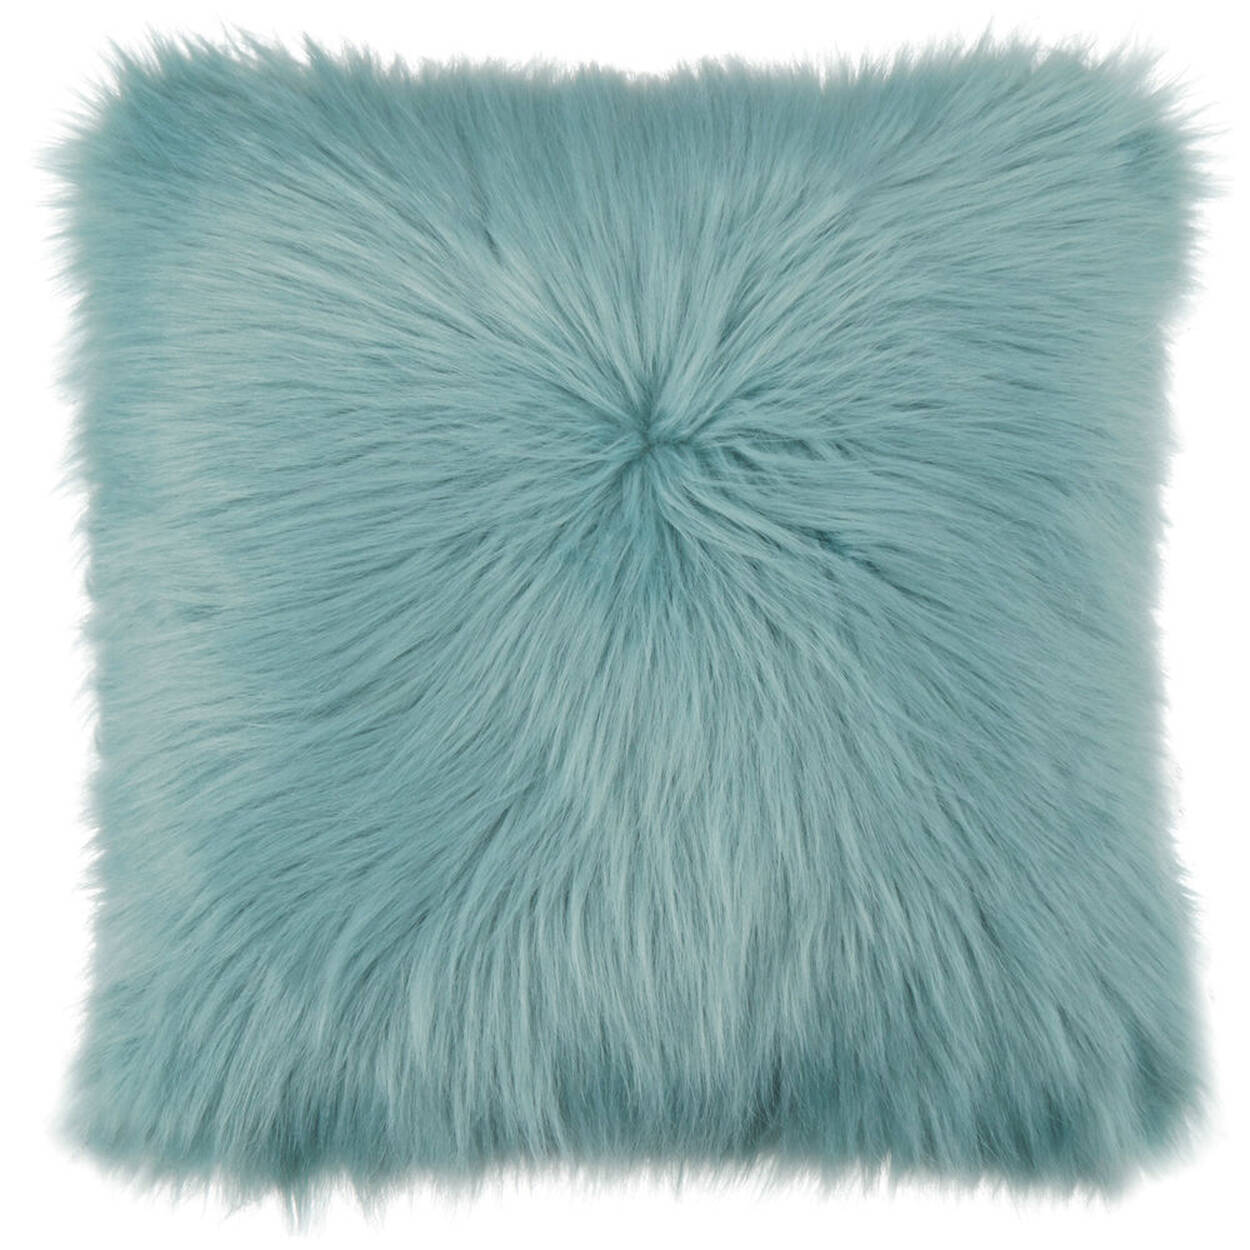 deluxe carousell instock others faux decorative on p throw furniture pillow plush stock super soft fur in cover home mongolian